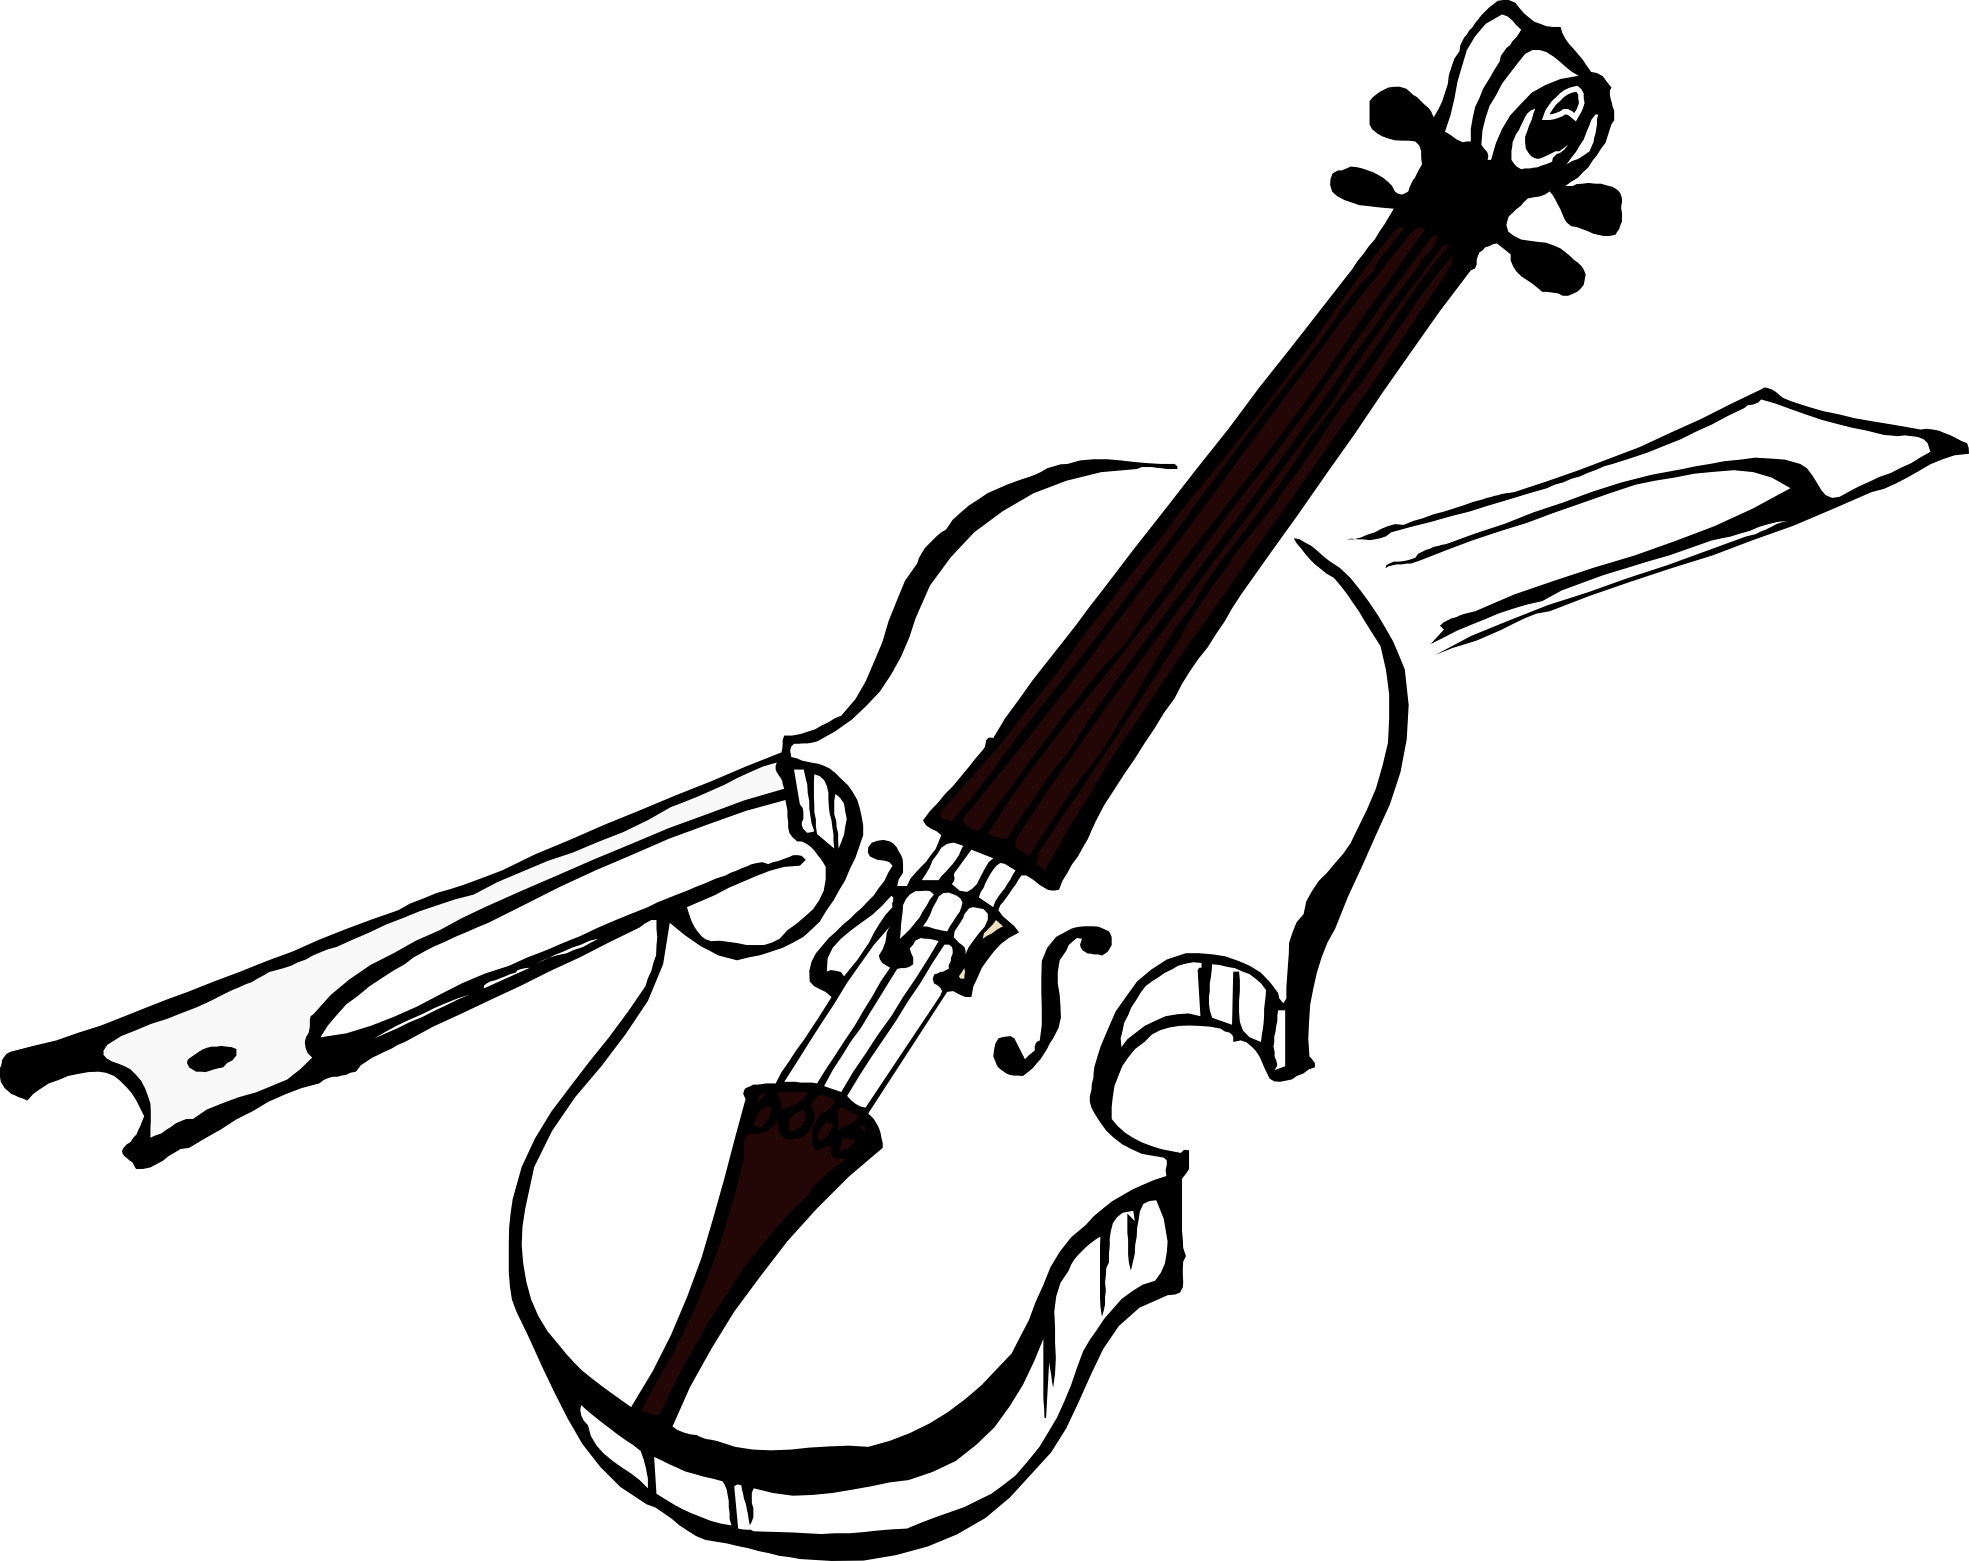 Music with cross clipart black and white image freeuse stock artfavor_violin_black_coloring_book-1969px.png (1969×1561) | Violin ... image freeuse stock